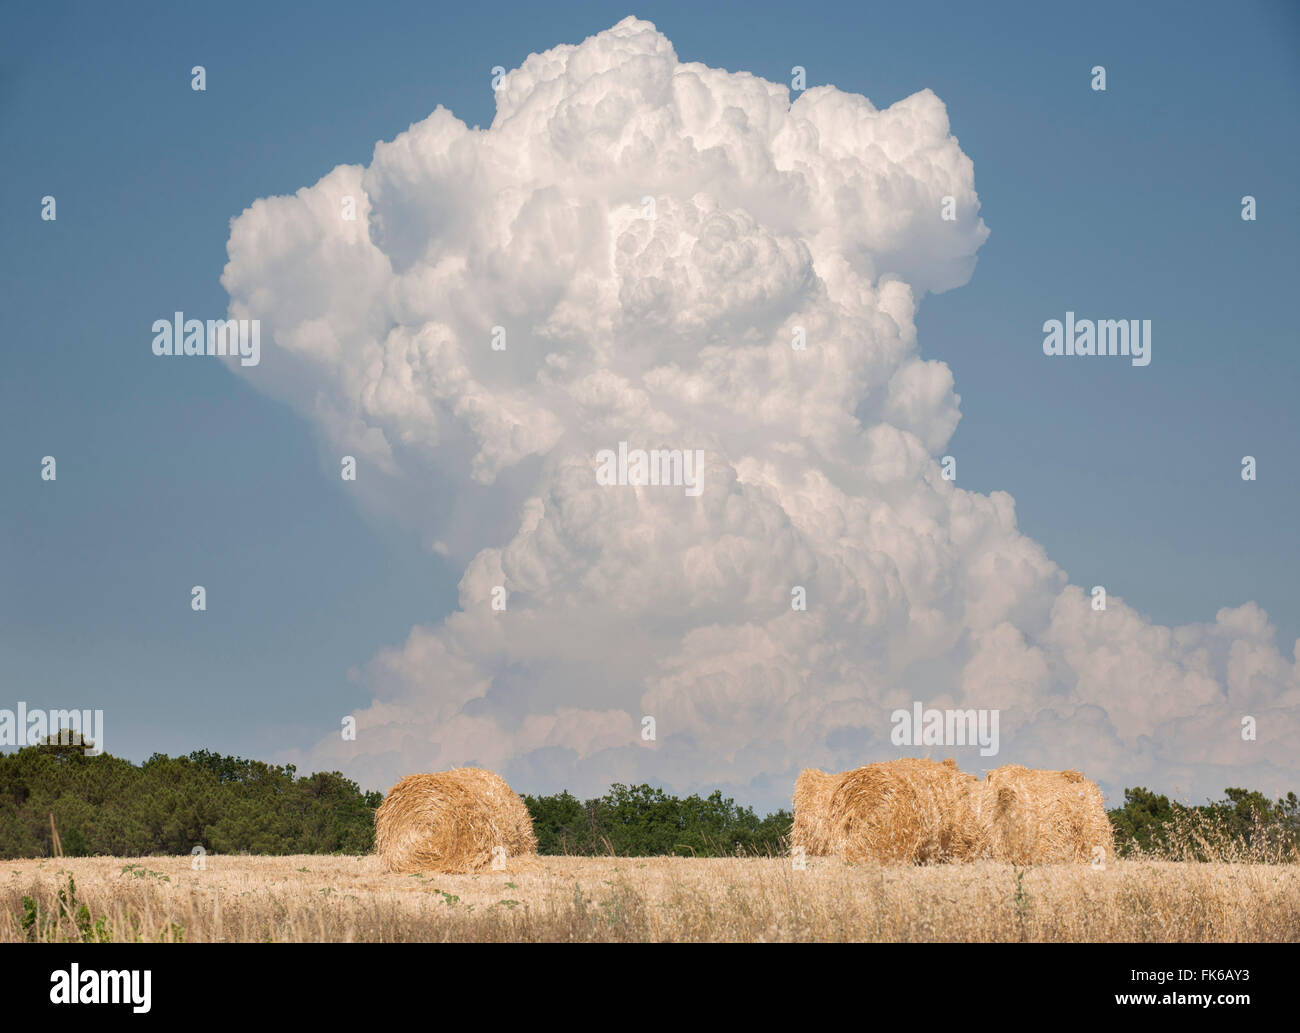 Billowing cloud over a wheat field, France, Europe - Stock Image